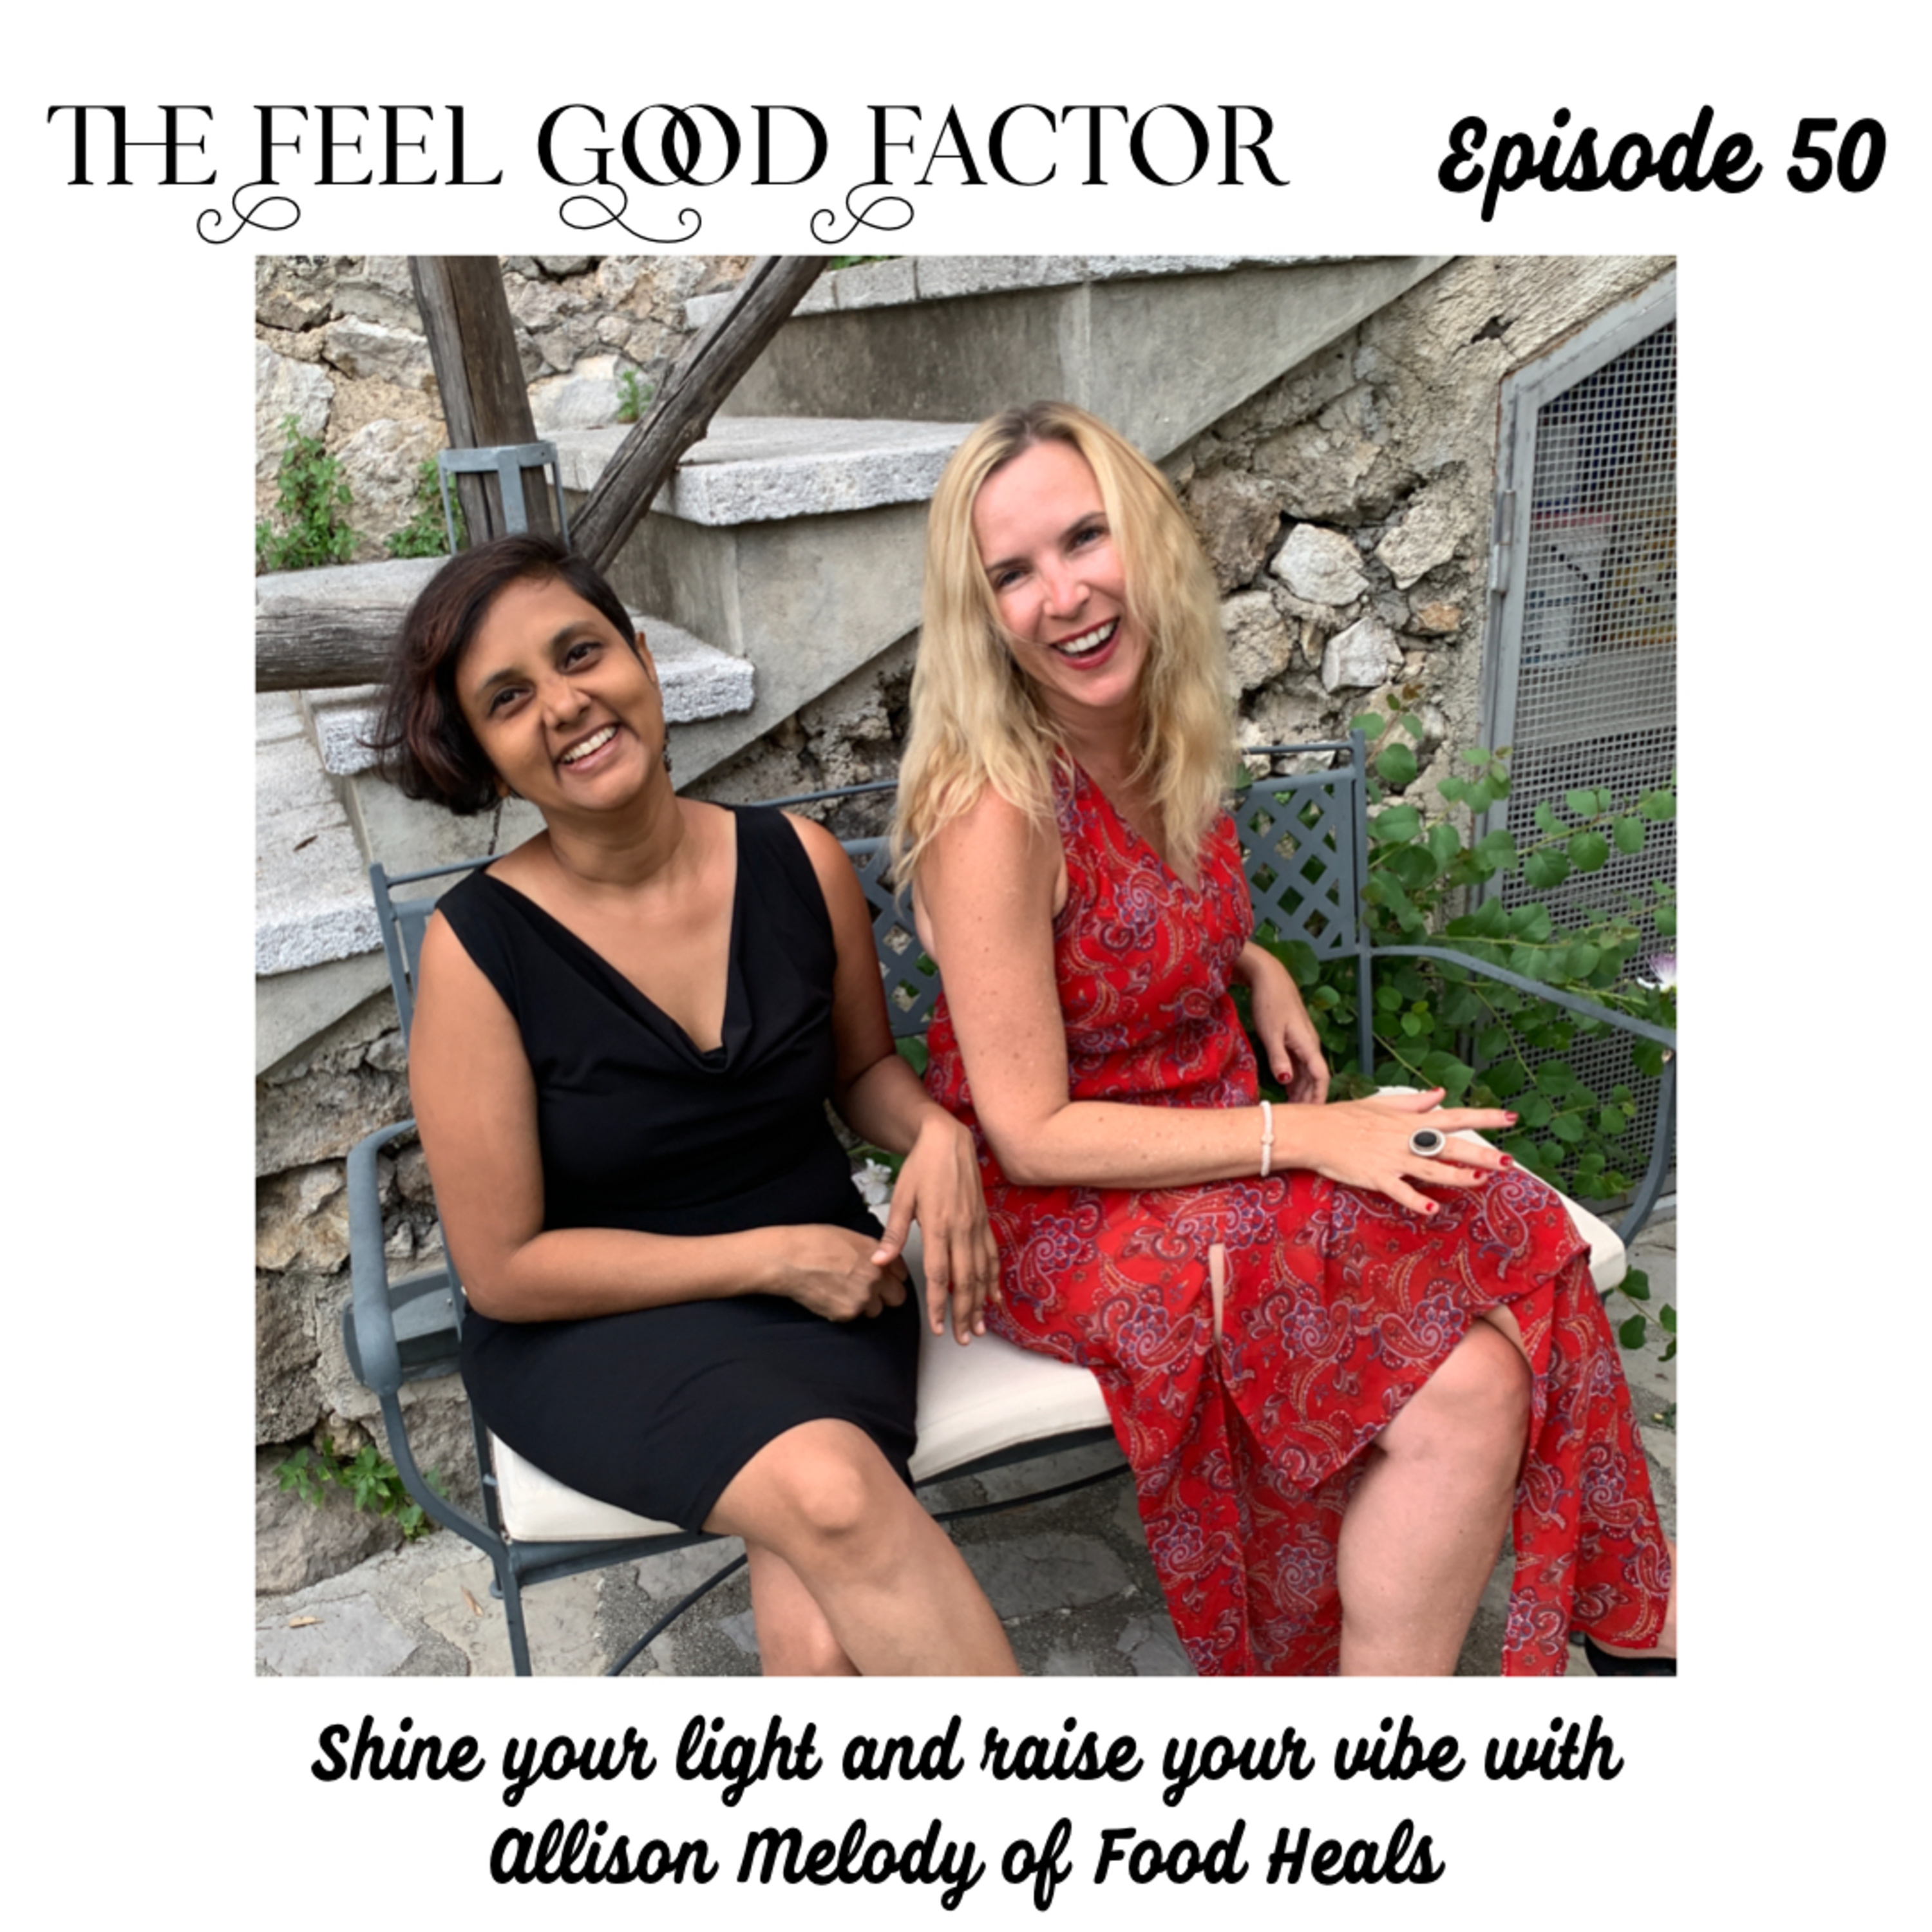 50: Shine your light and raise your vibe with Allison Melody of Food Heals